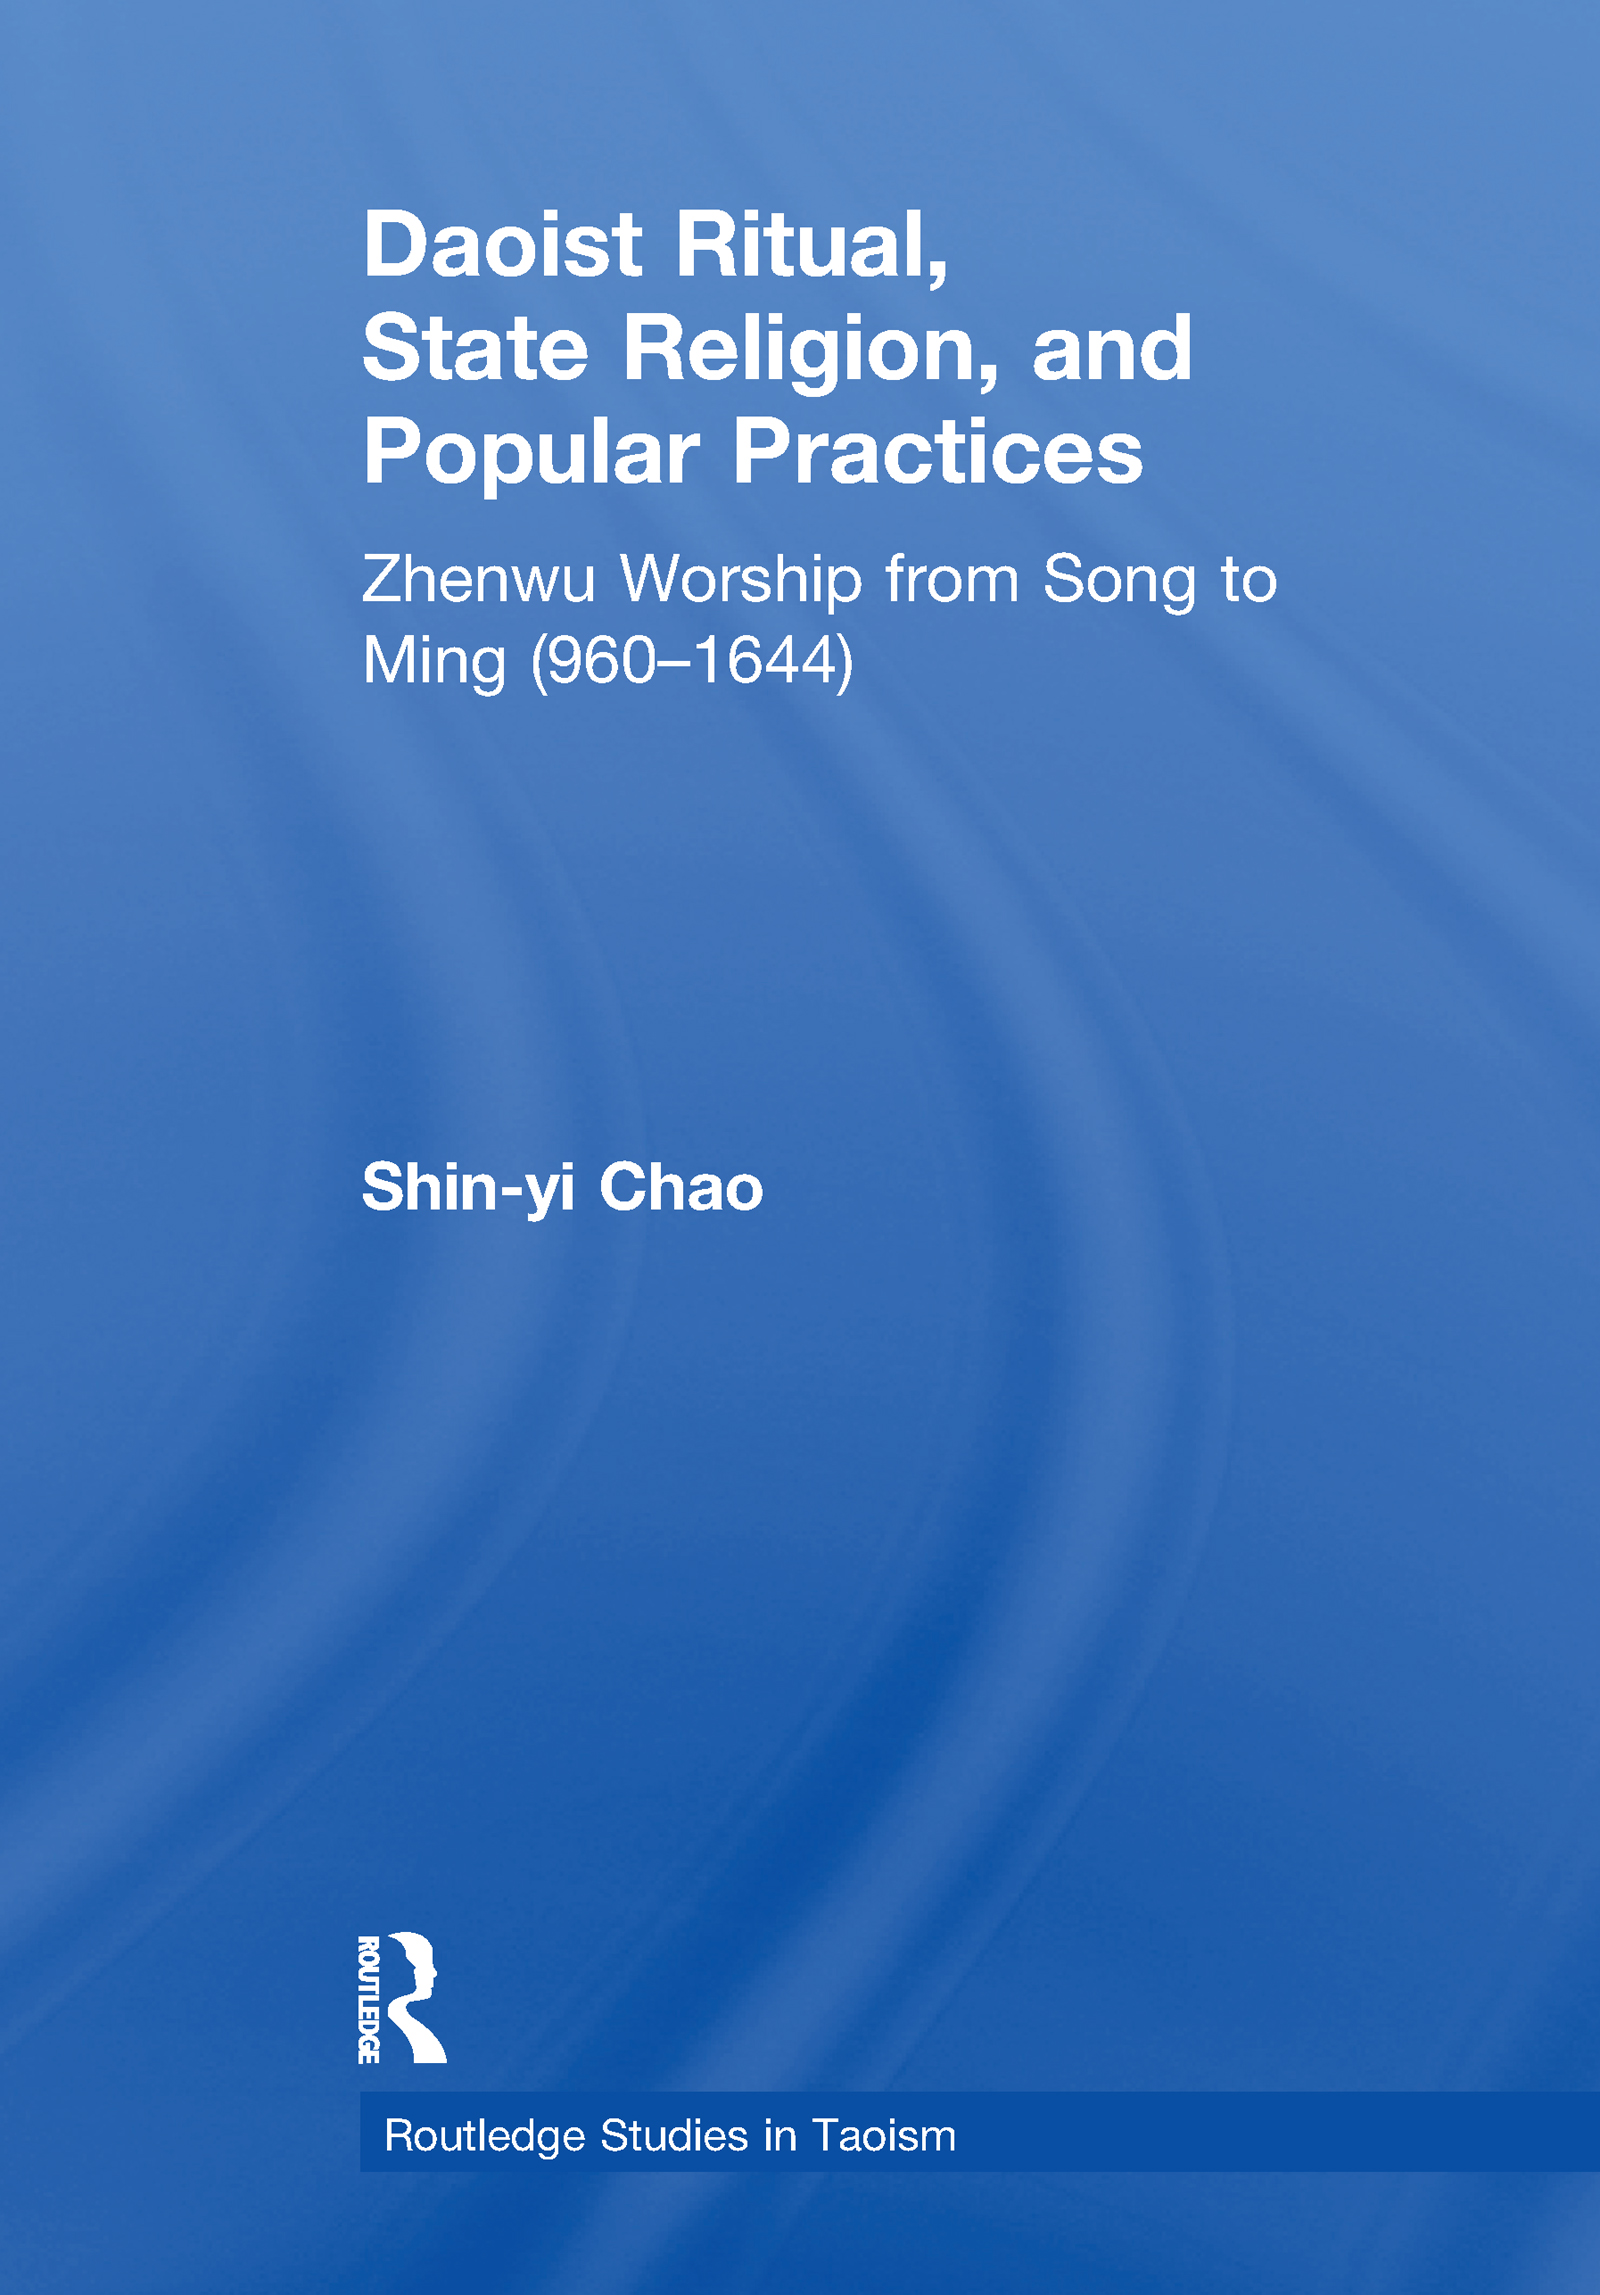 Daoist Ritual, State Religion, and Popular Practices